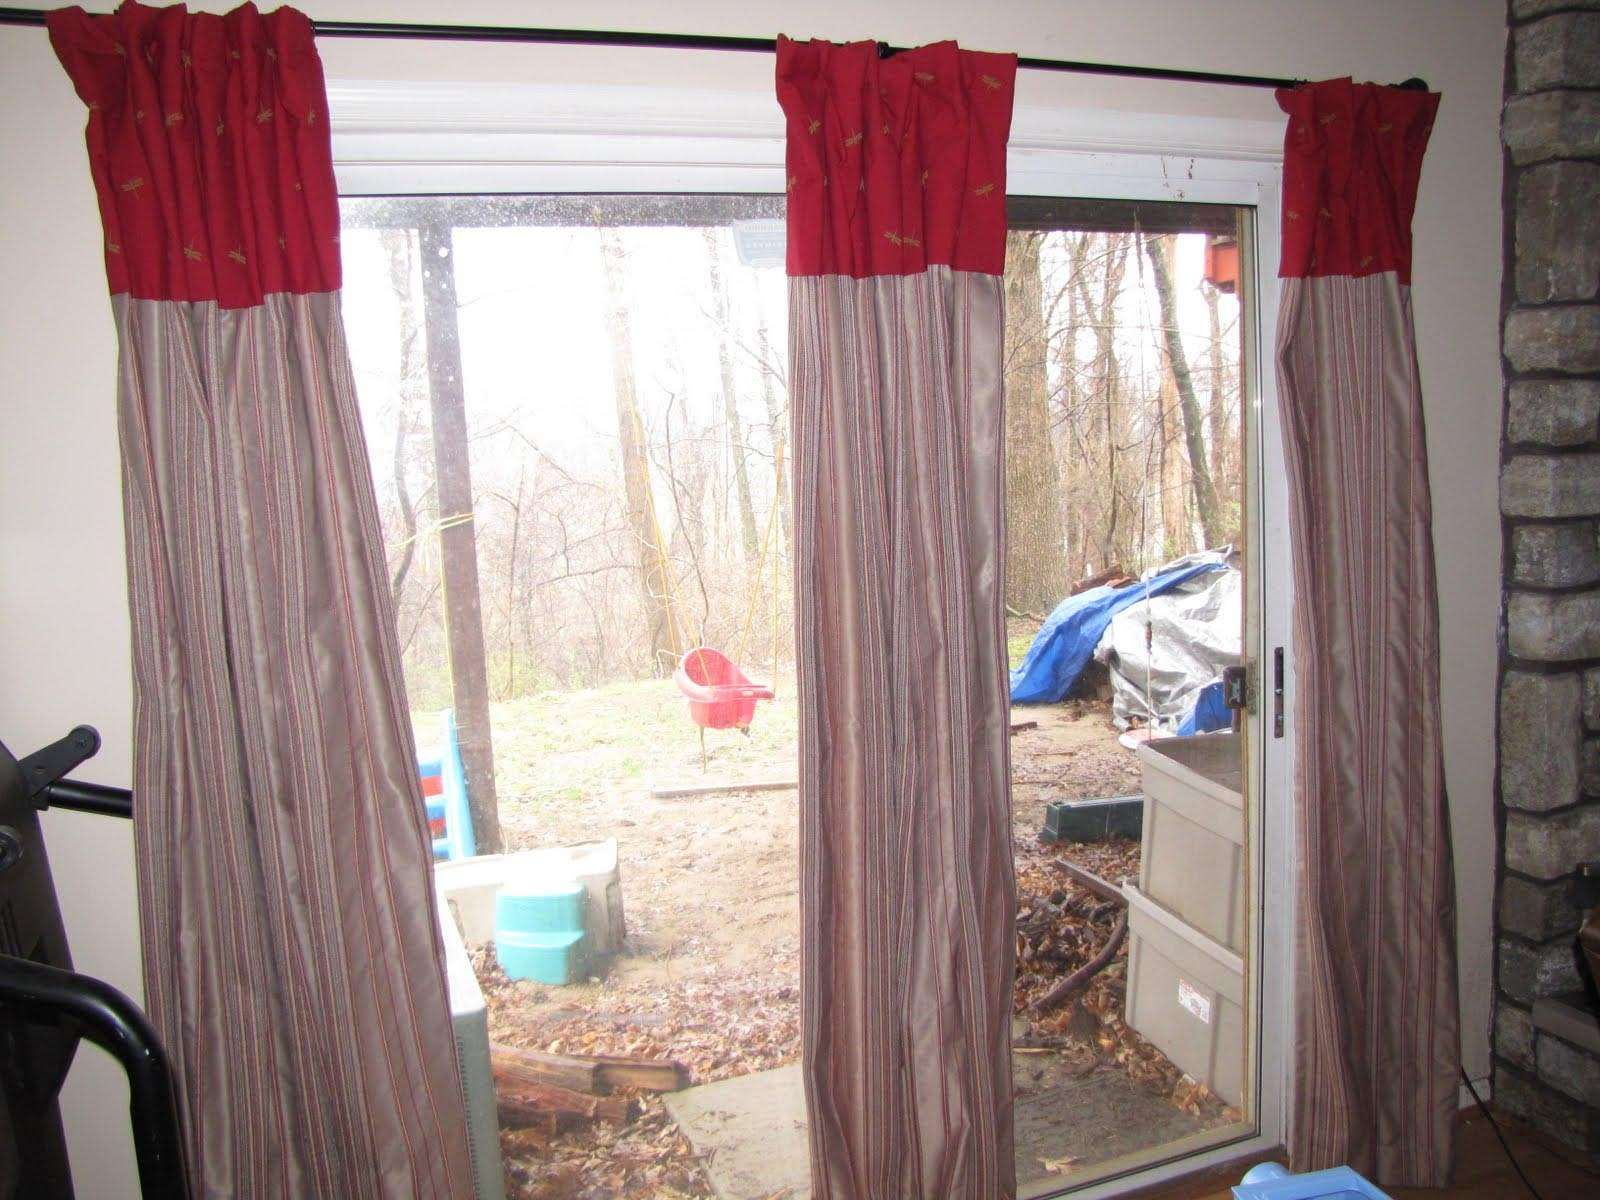 Sliding Door Curtains Decorating IdeasSliding Door Curtains Decorating Ideas